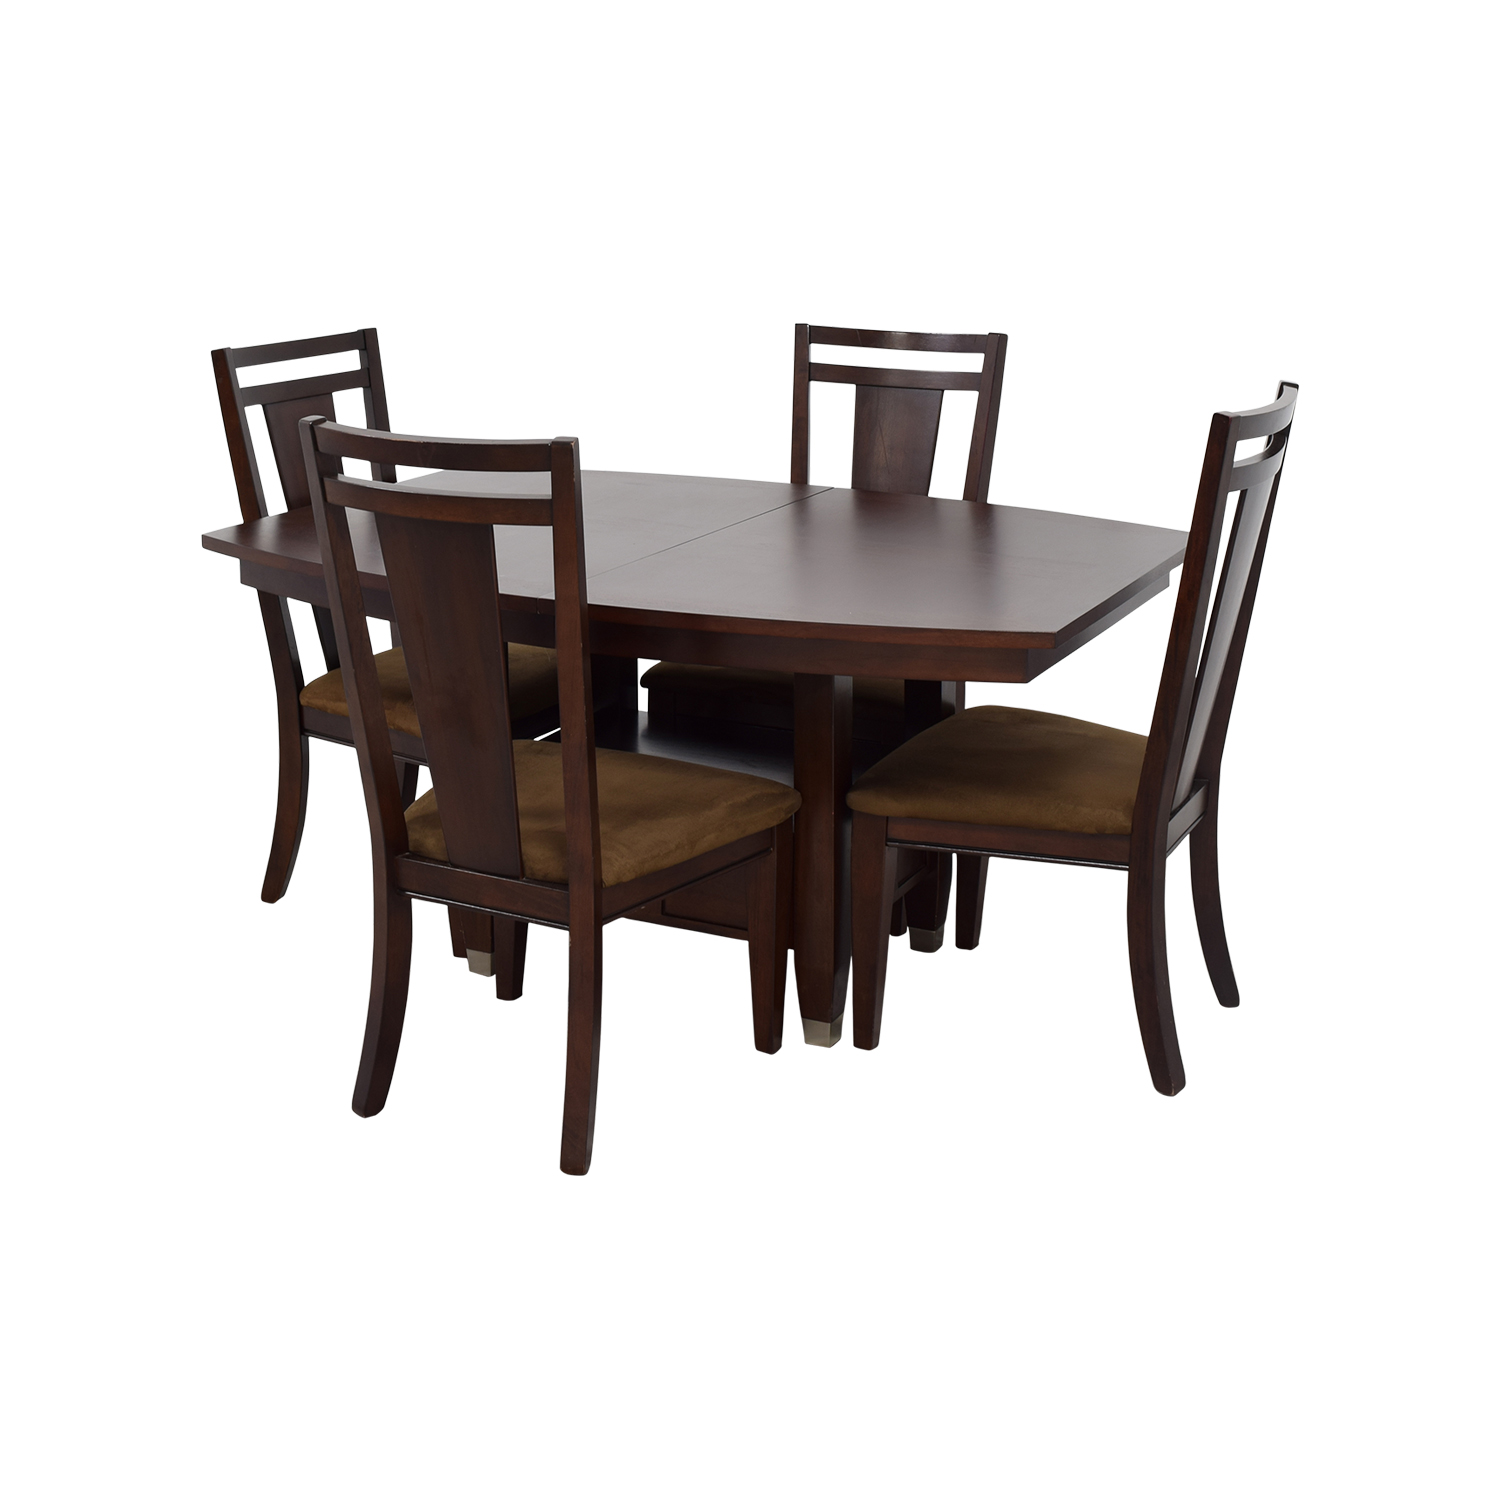 Dining Table Rollins Dining Table: Broyhill Broyhill Wood Dining Table Set / Tables